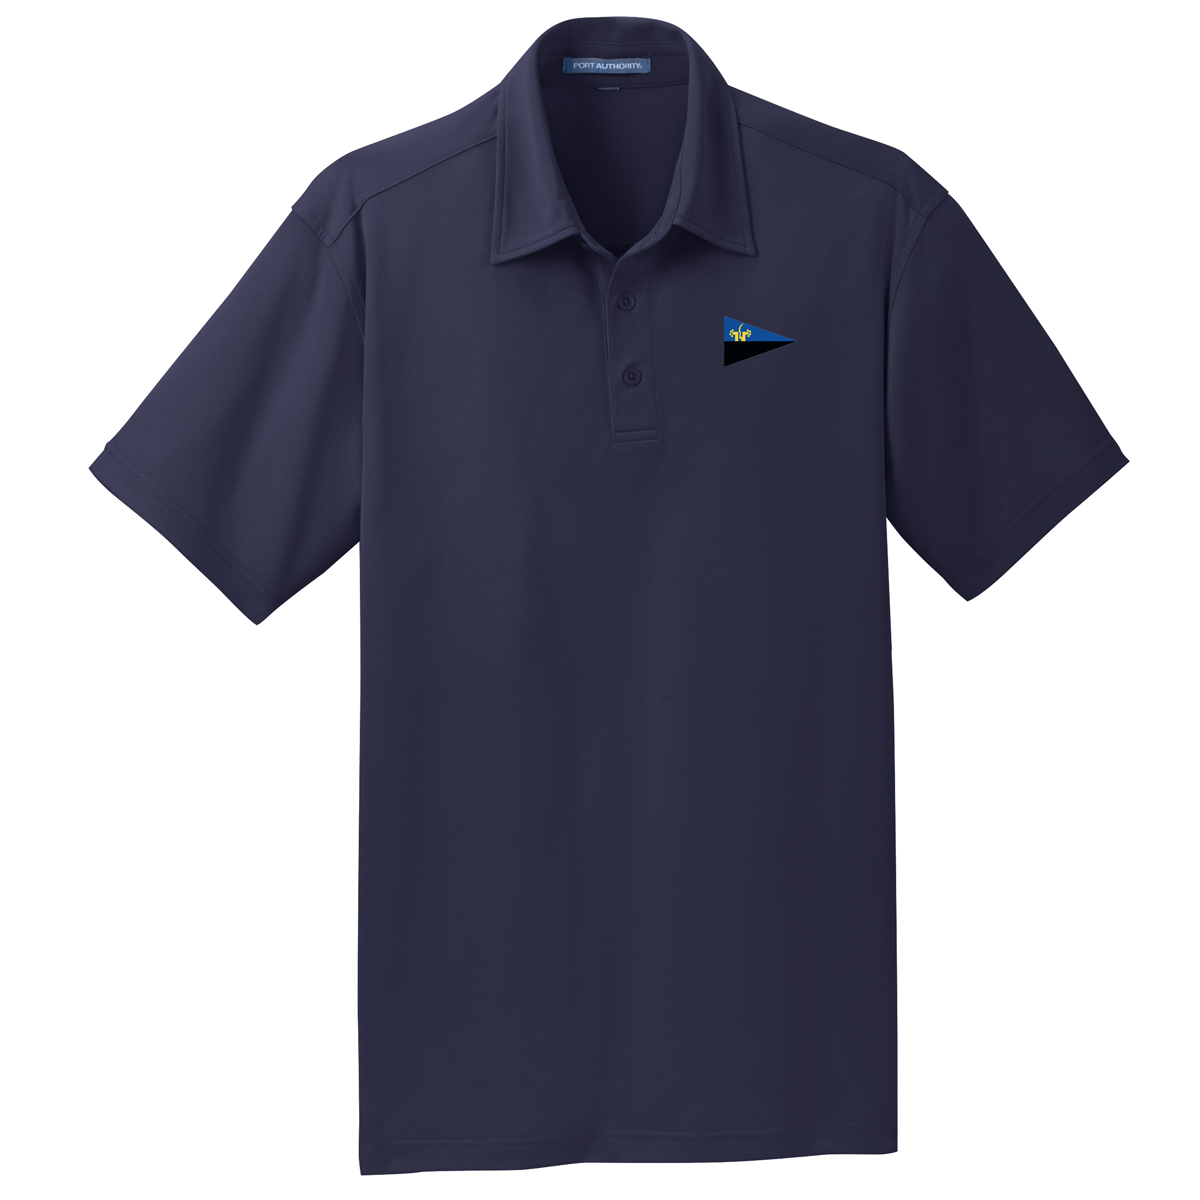 Mudratz - Men's Tech Polo (MDR110)